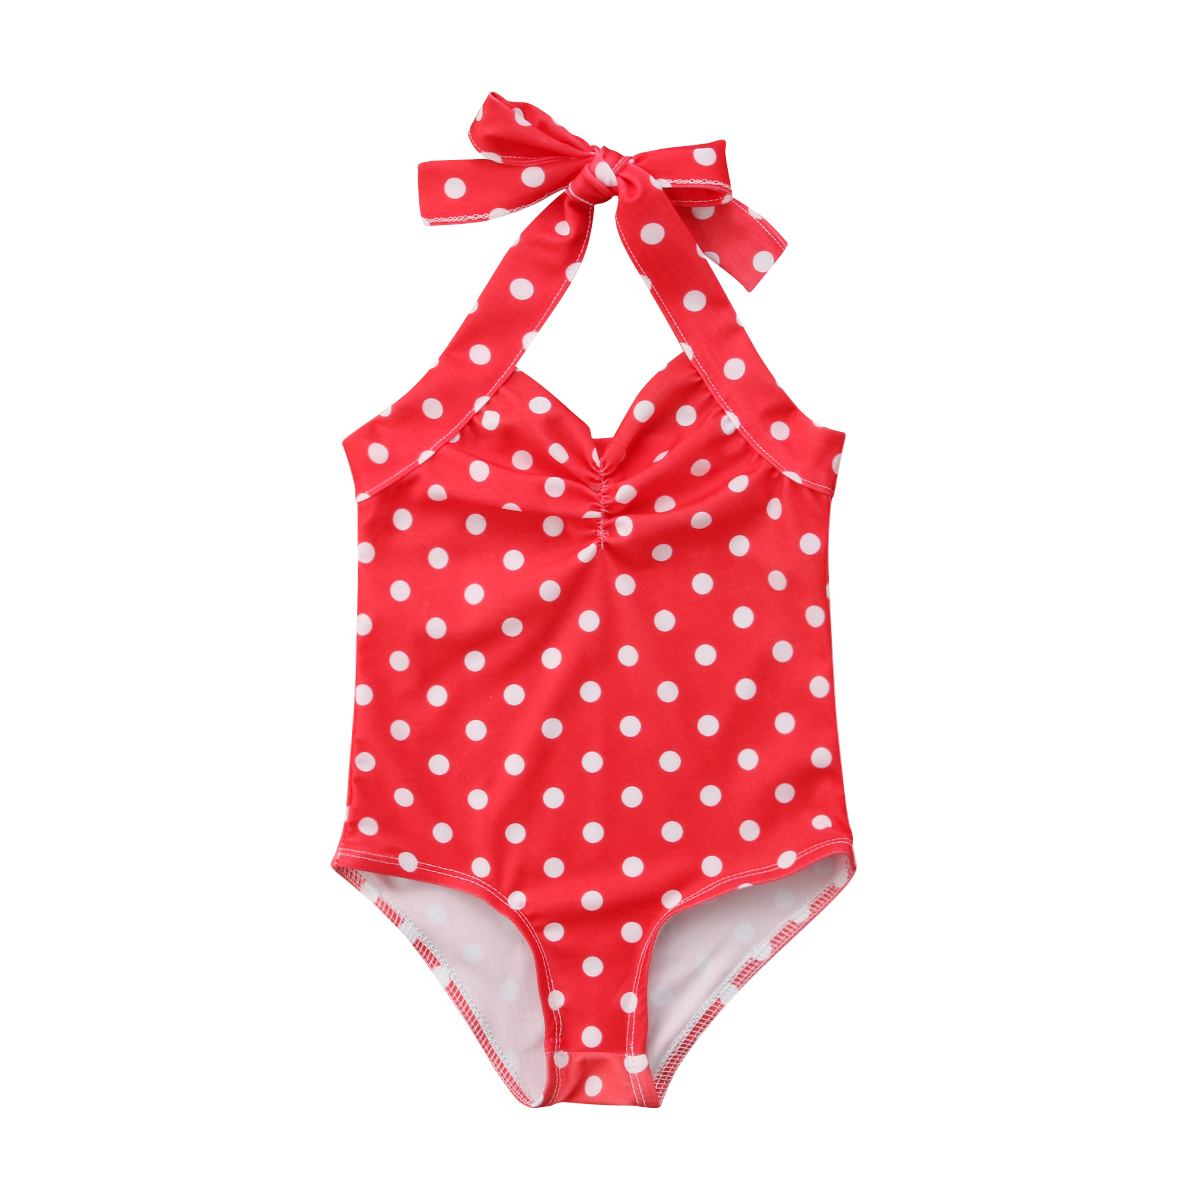 0-3Y Cute Newborn Toddler Kids Baby Girl Sleeveless Backless Polka Dot Strap Halter Swimming One Pieces Bathing Suit Swimsuit | healthy feet socks